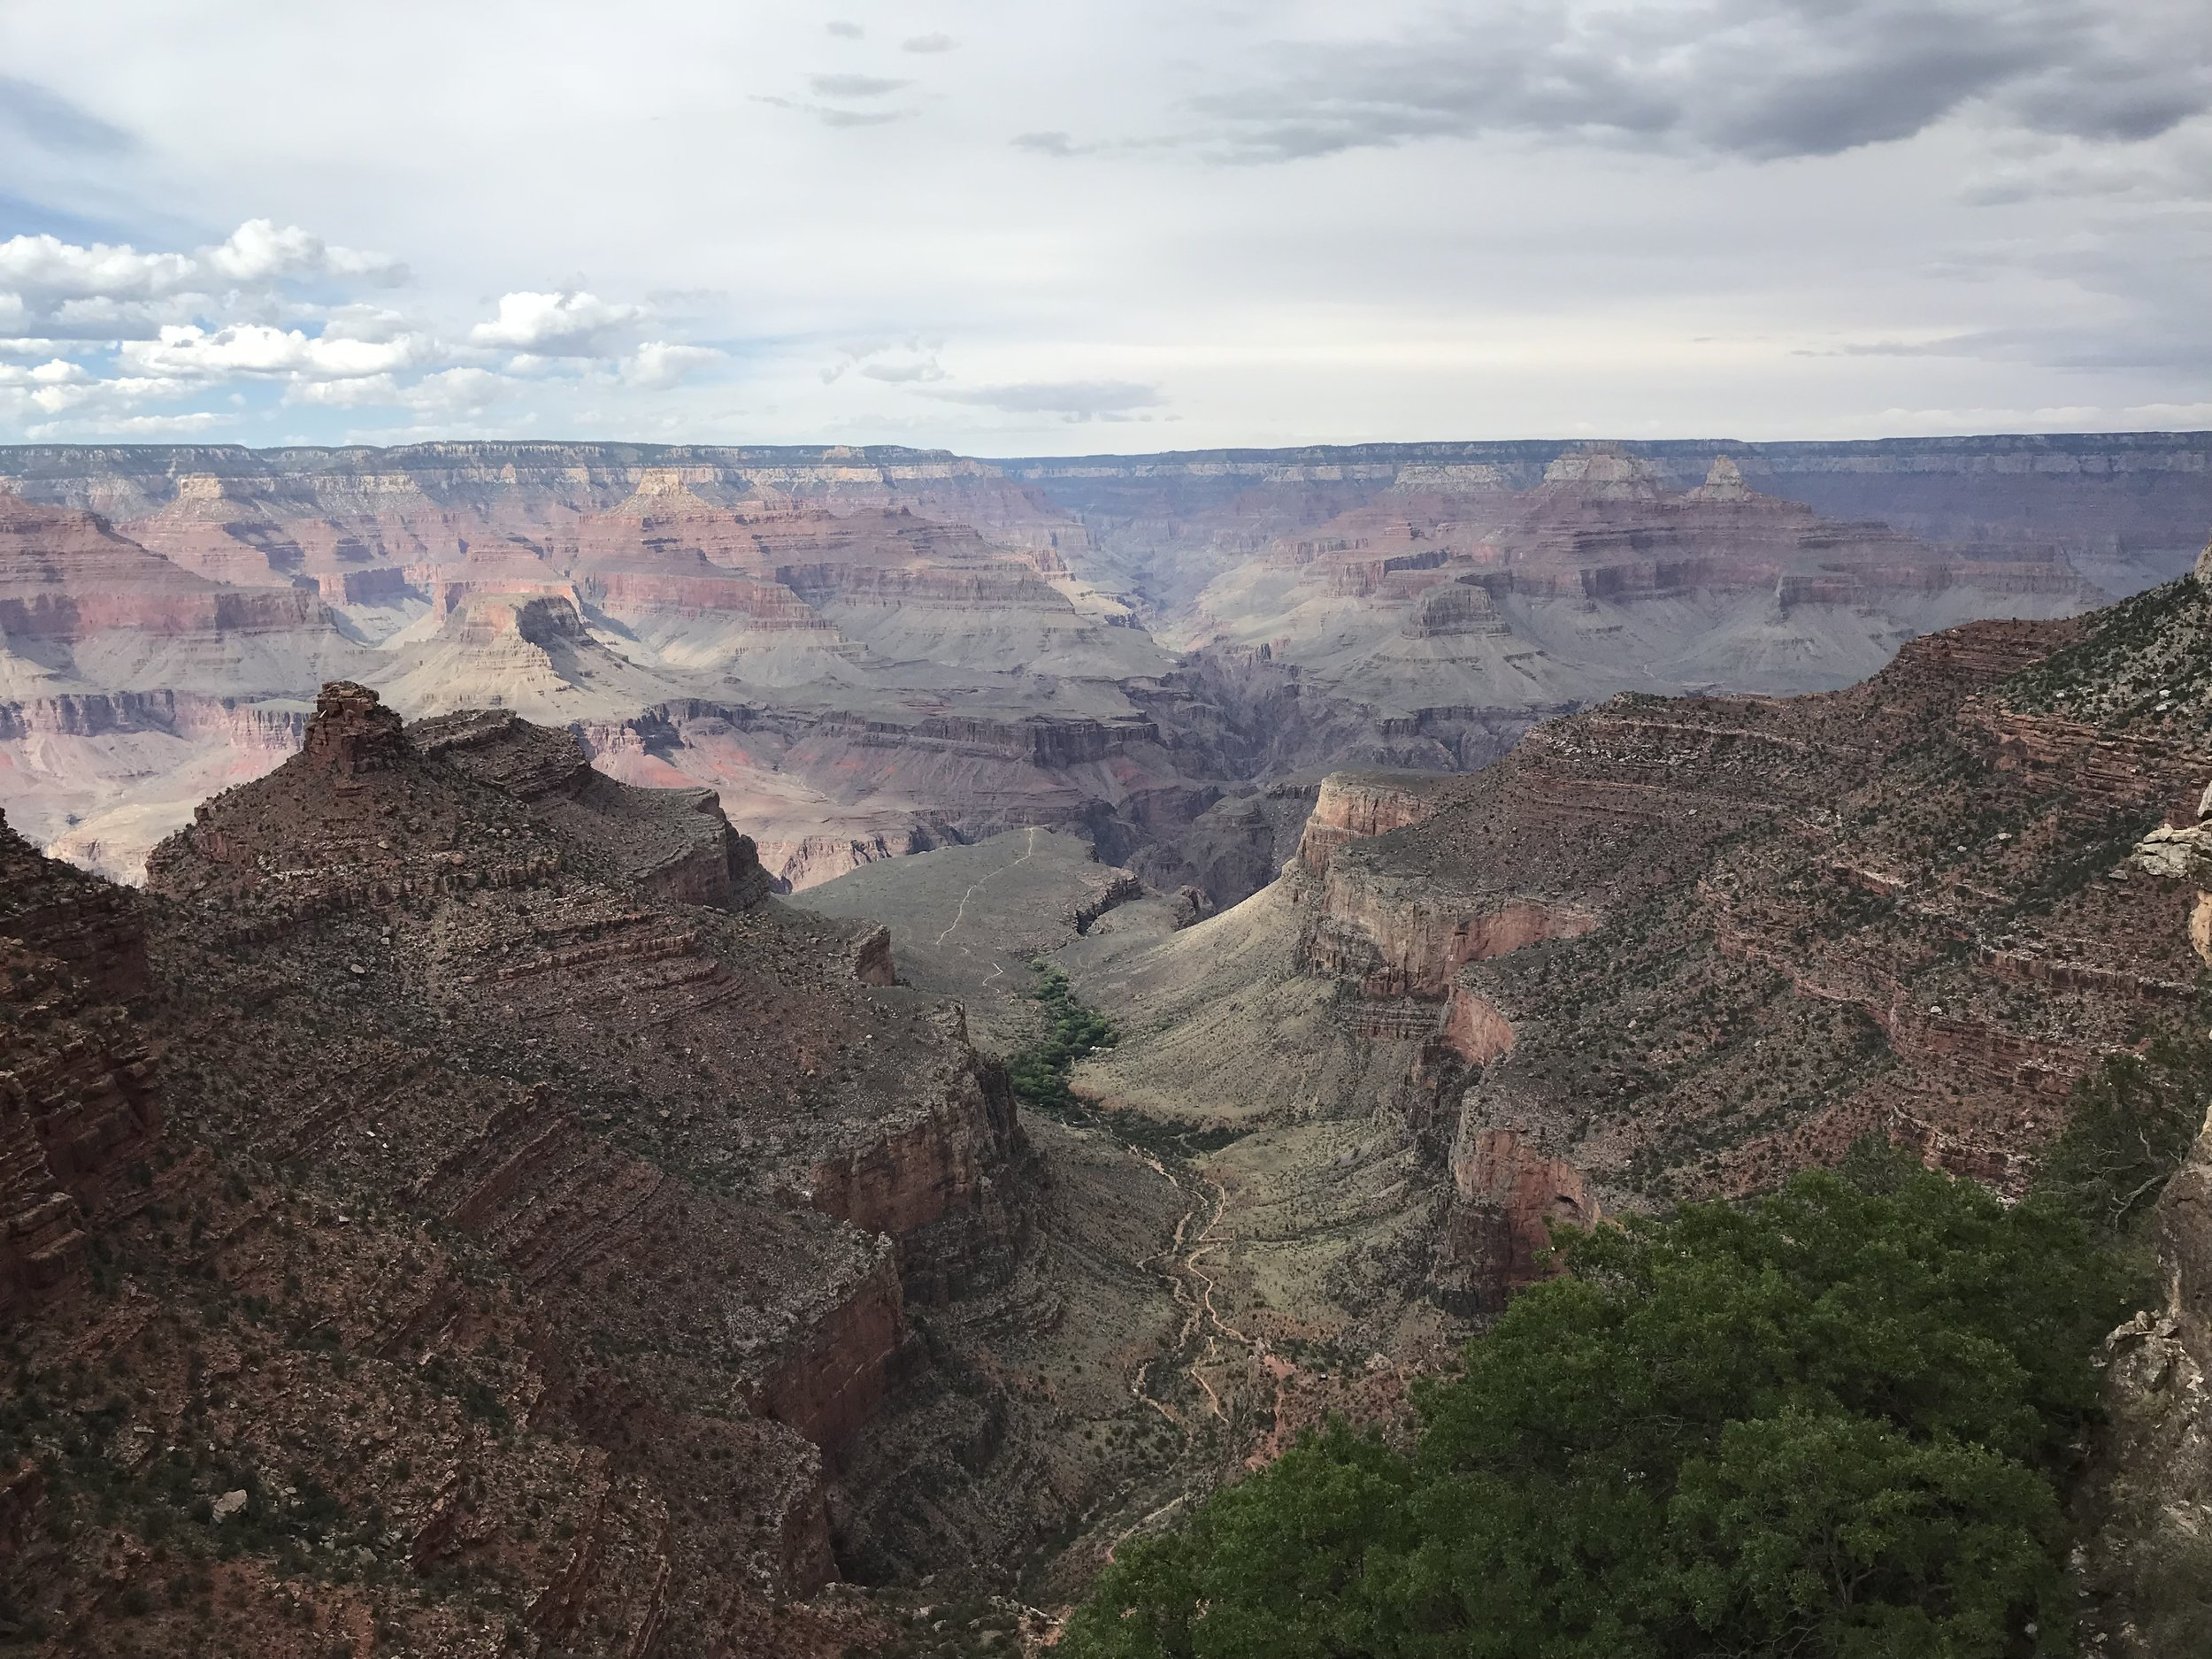 Looking into the Canyon!